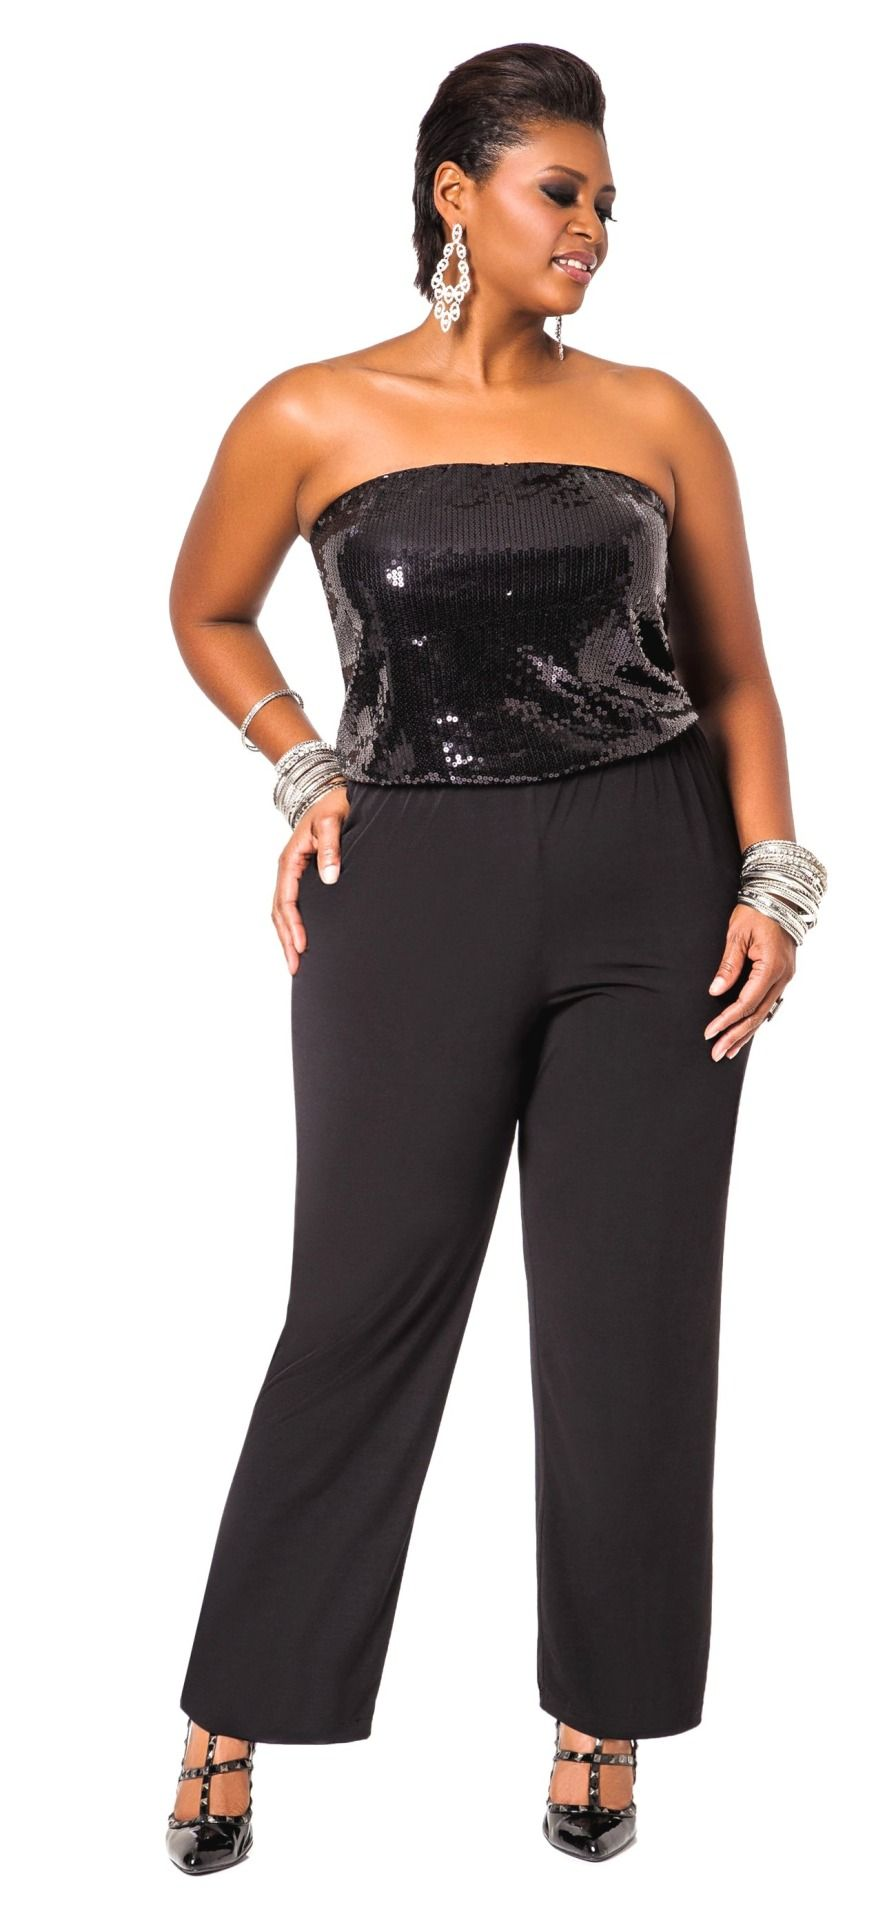 339a41109aa Chearice Vaughn in Ashley Stewart's Sequined Tube Top Jumpsuit ...